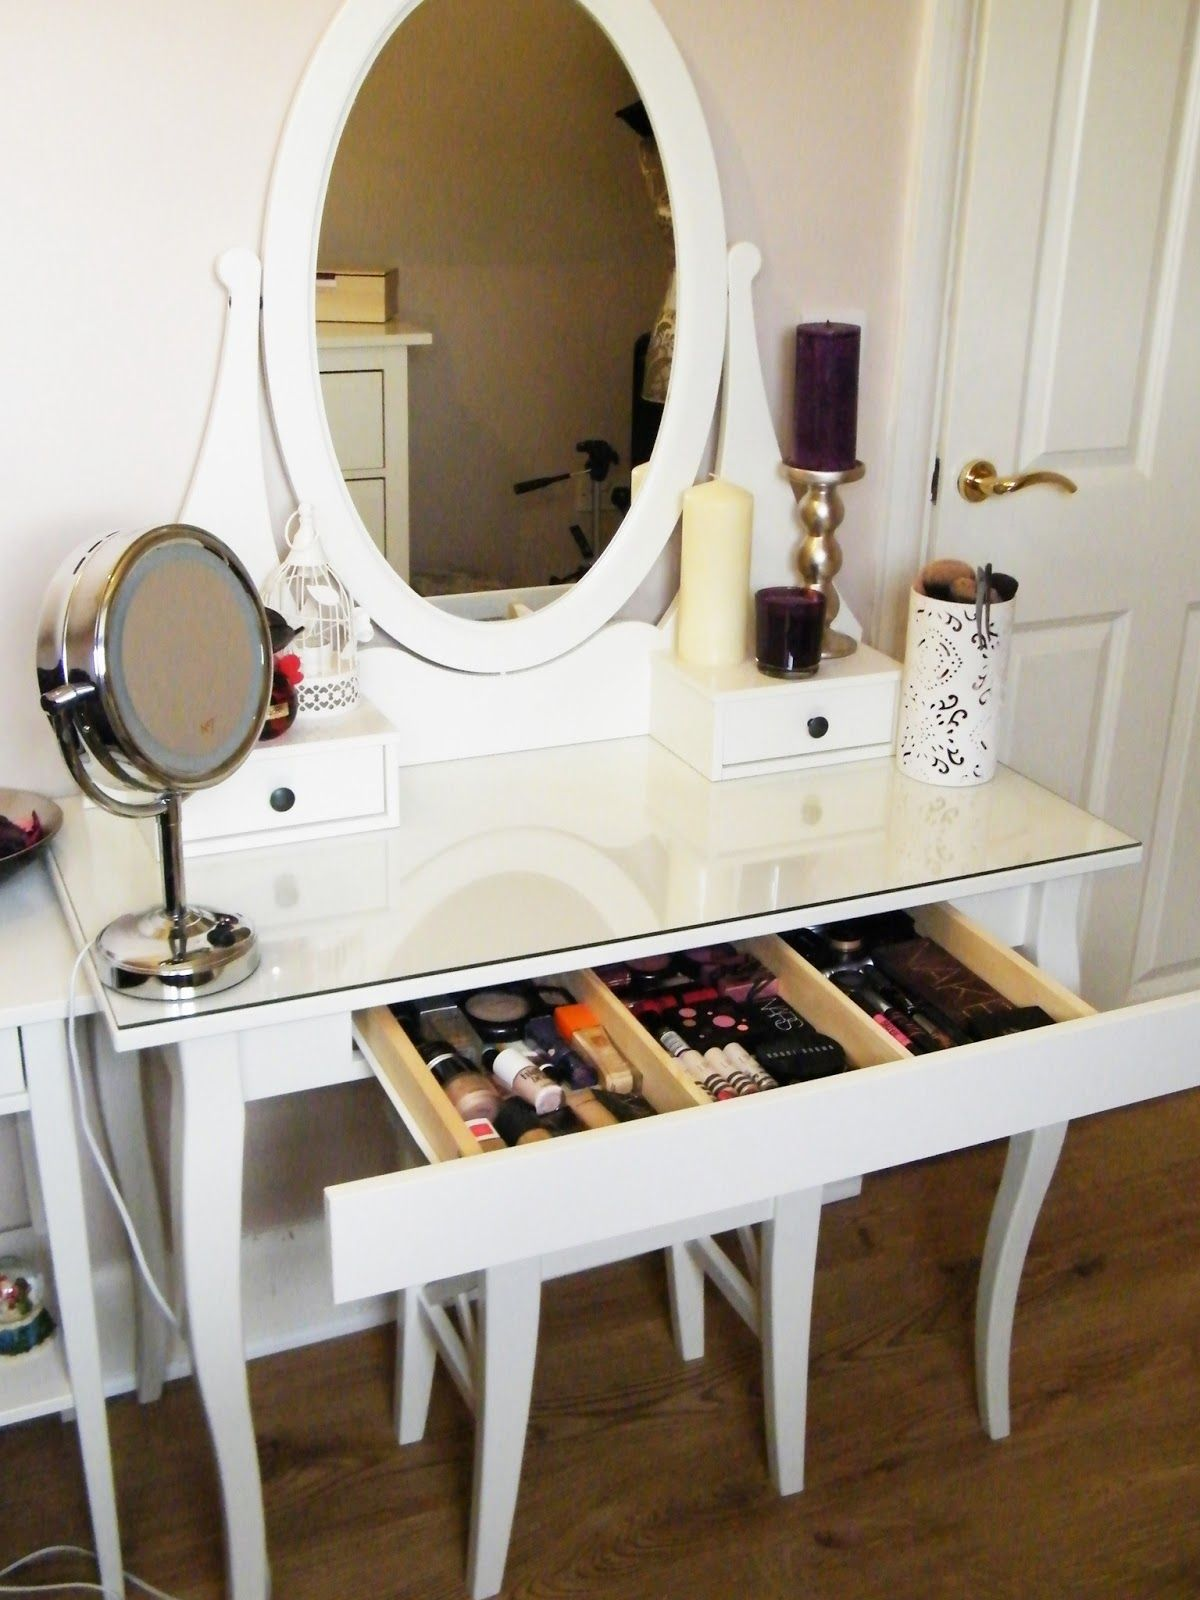 Meuble Dressing Ikea Ikea Dressing Table Hemnes Google Search Our Bedroom Meuble